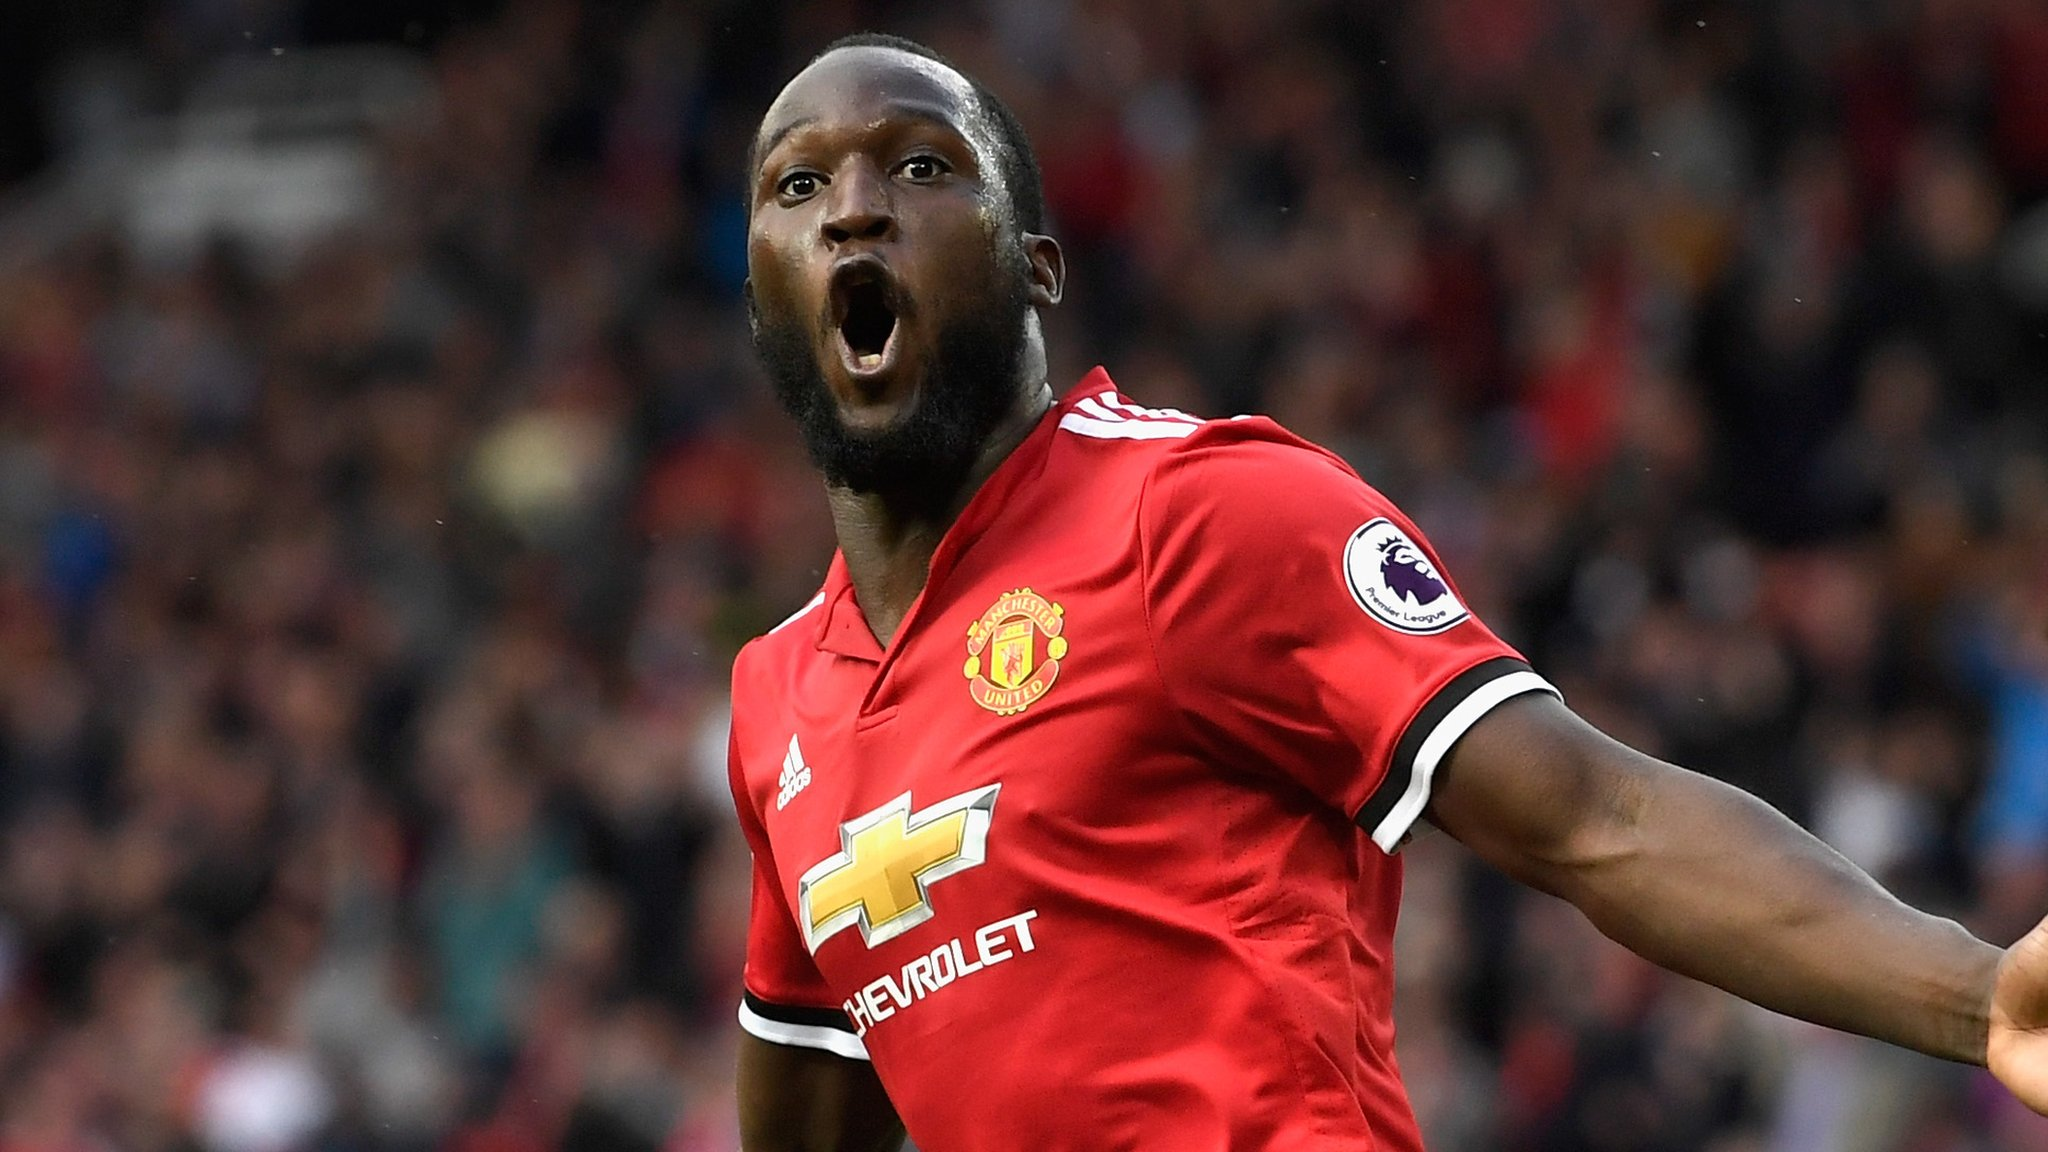 Lukaku asks Man Utd fans to move on from chant